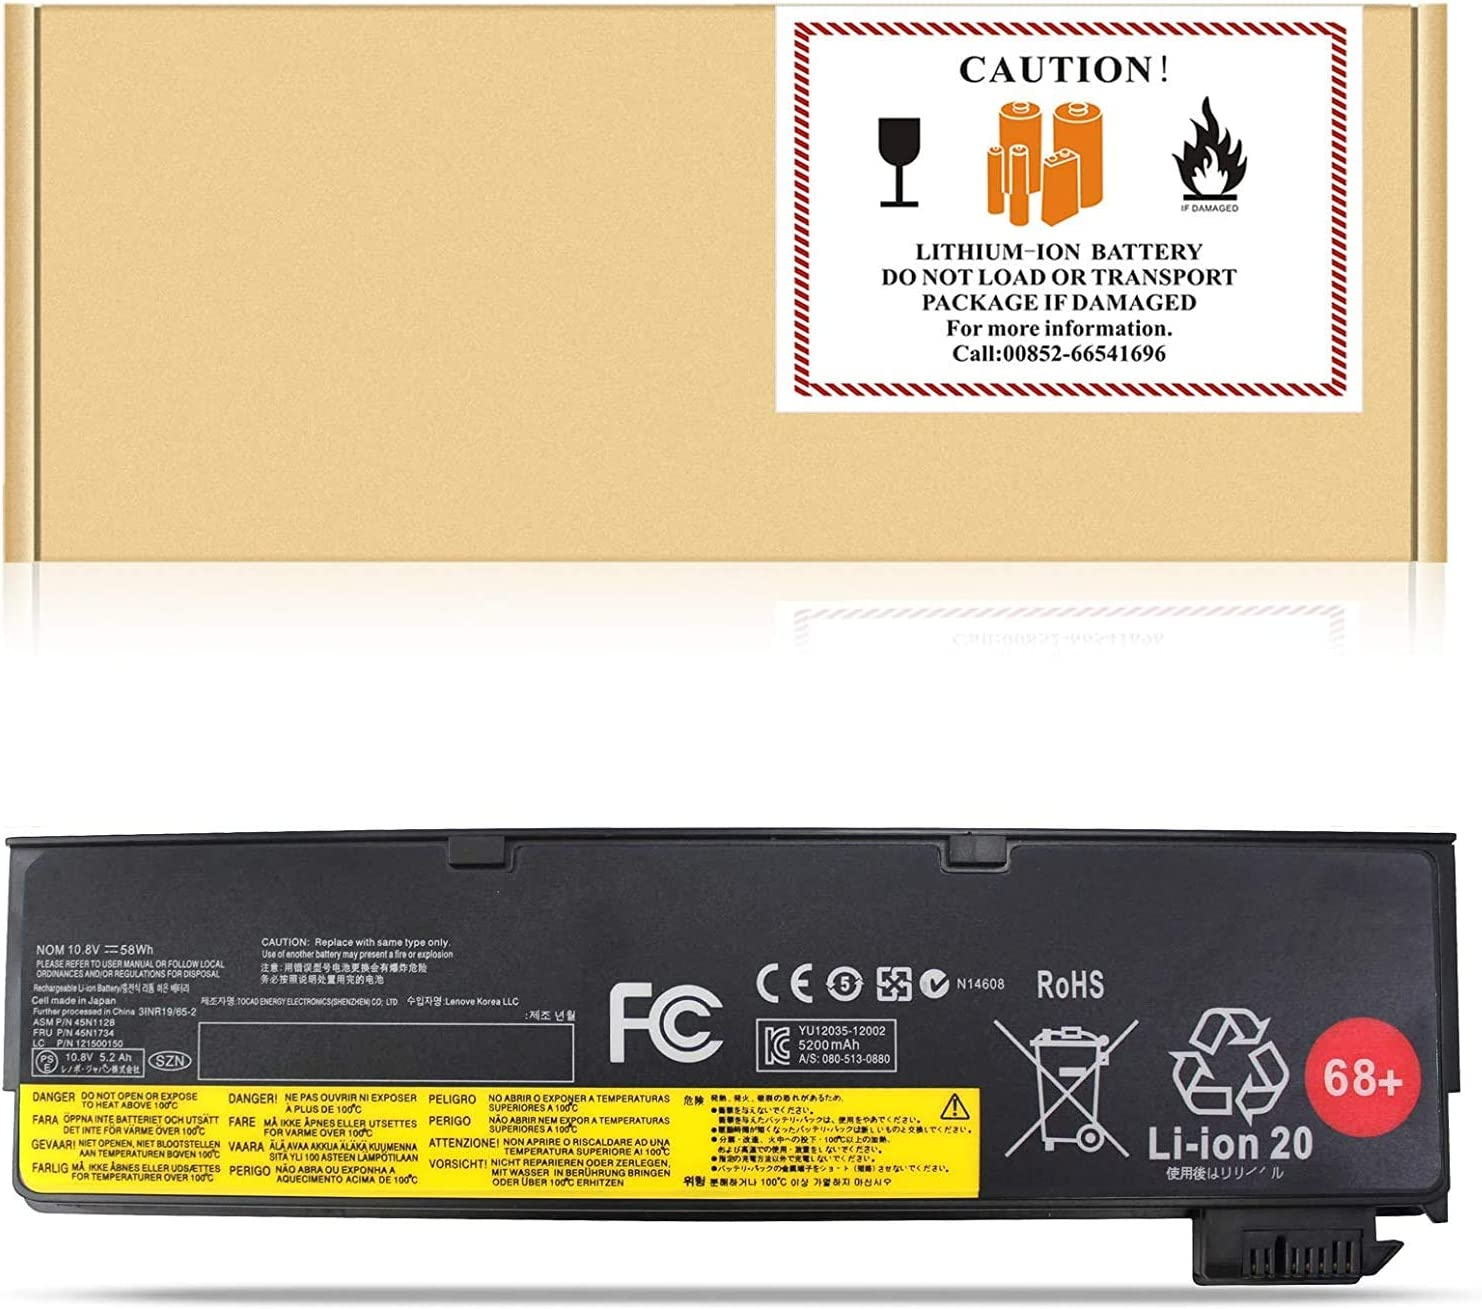 X240 45N1128 45N1734 FLYTEN Laptop Battery Compatible with Lenovo ThinkPad T440 T450 T460 T470P T550 T560 X240 X250 X260 K2450 X270 L460 L470 S440 S540 P50S W550S P/N: 0C52861 121500146 10.8V 48Wh